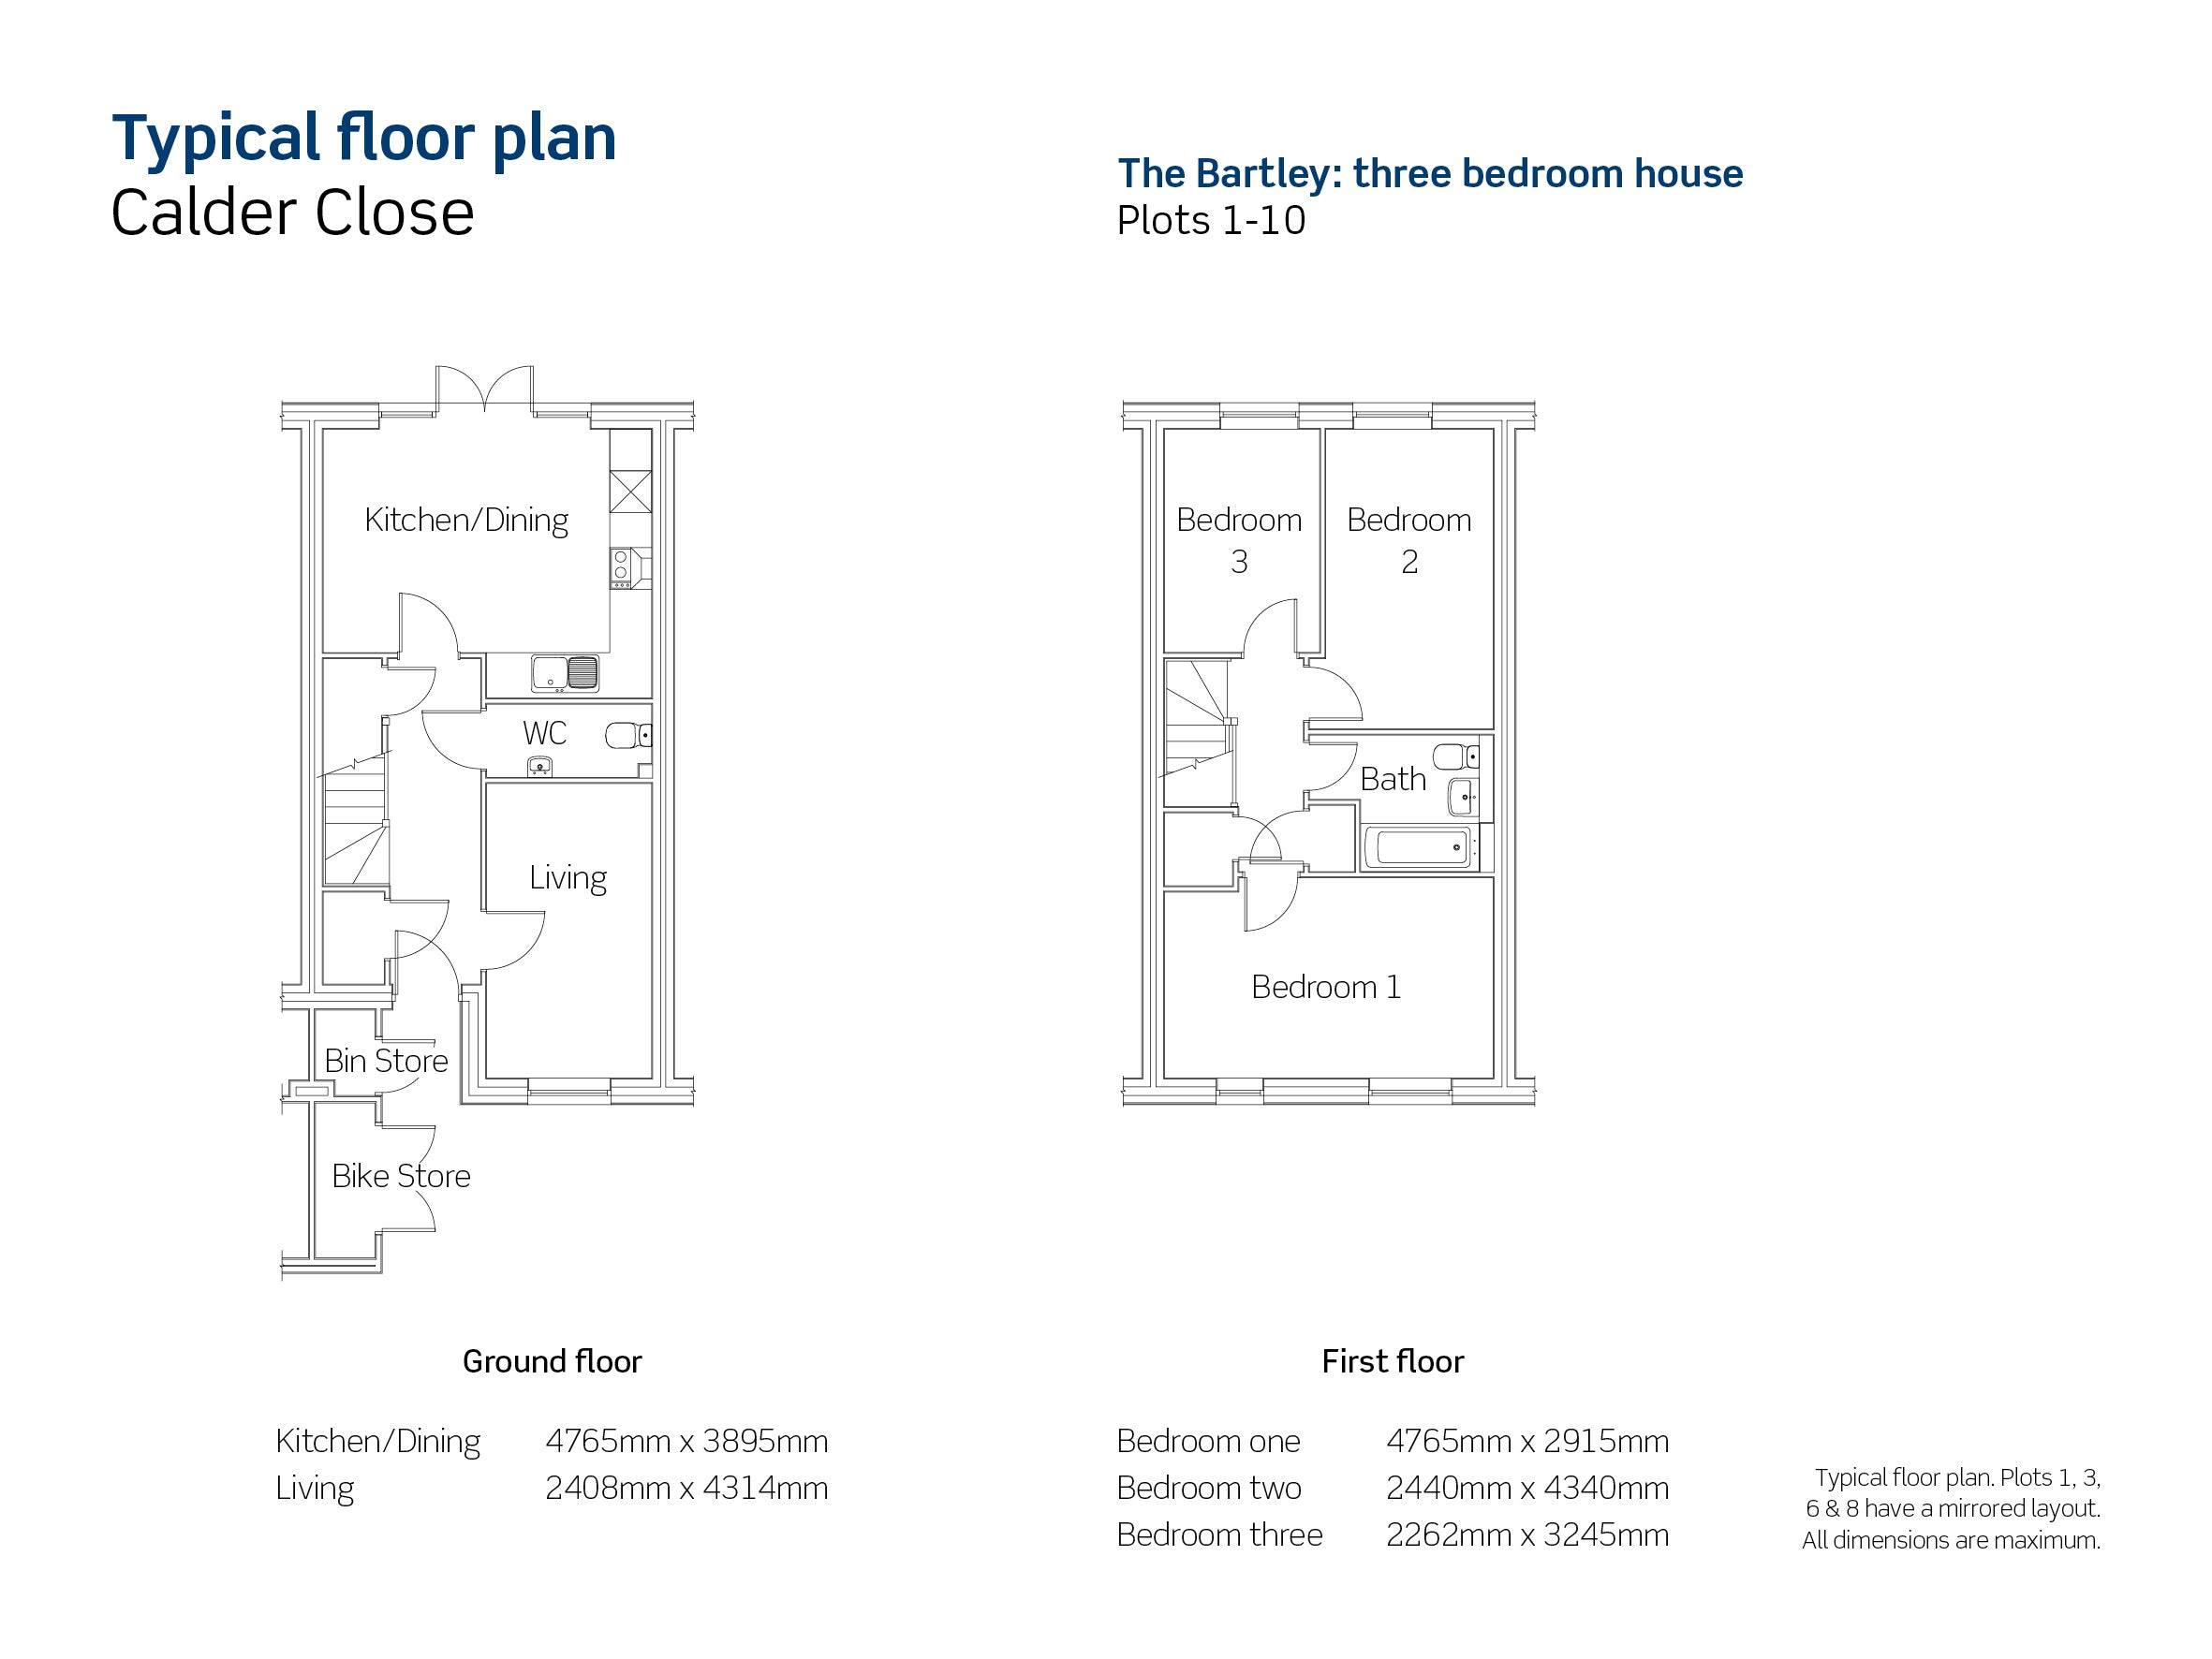 Drawing of Calder Close The Bartley floor plan